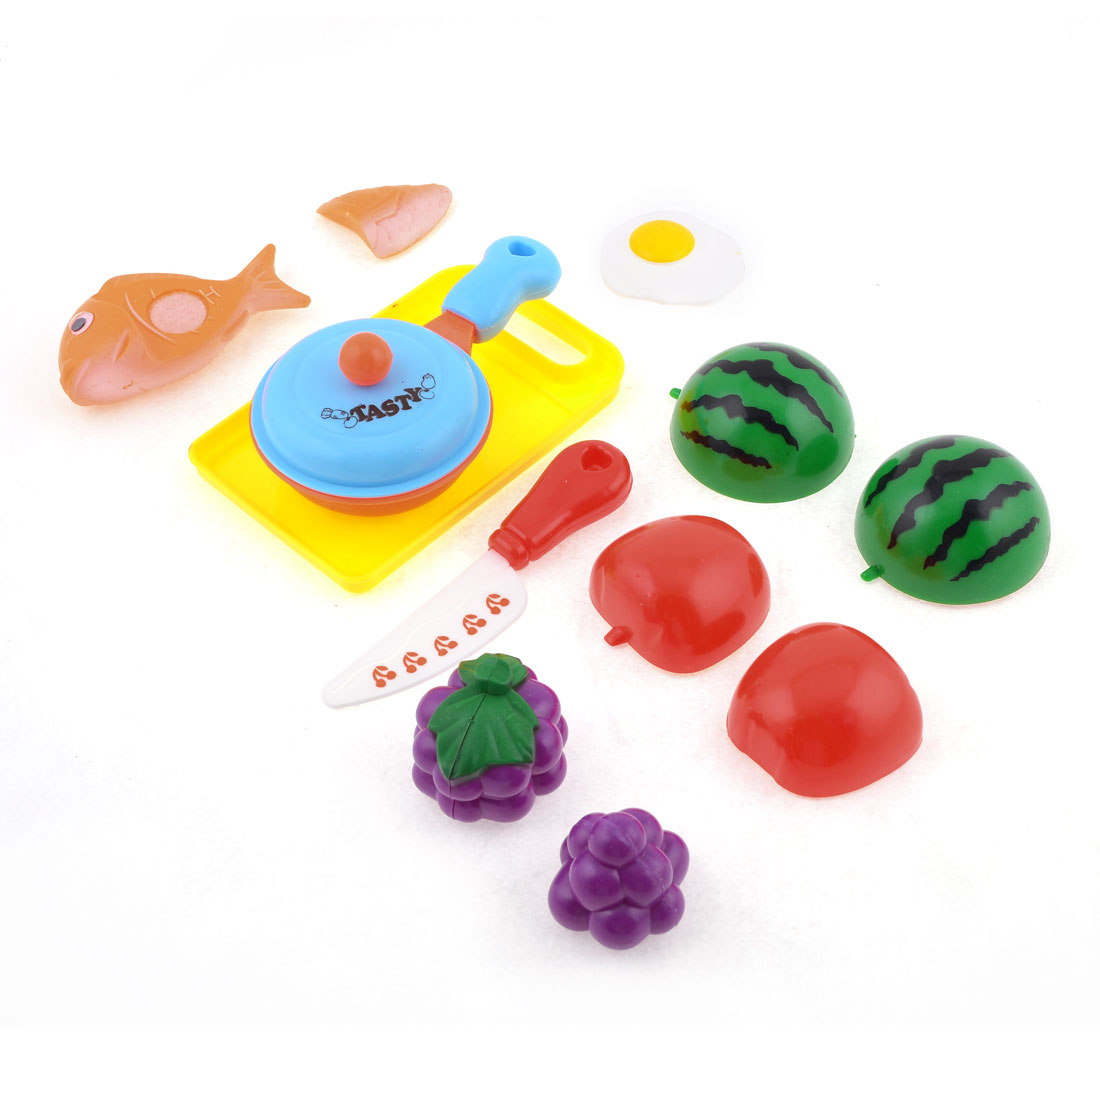 Multicolor Plastic Fruit Food Kitchenware Pretend Play Toy for Children